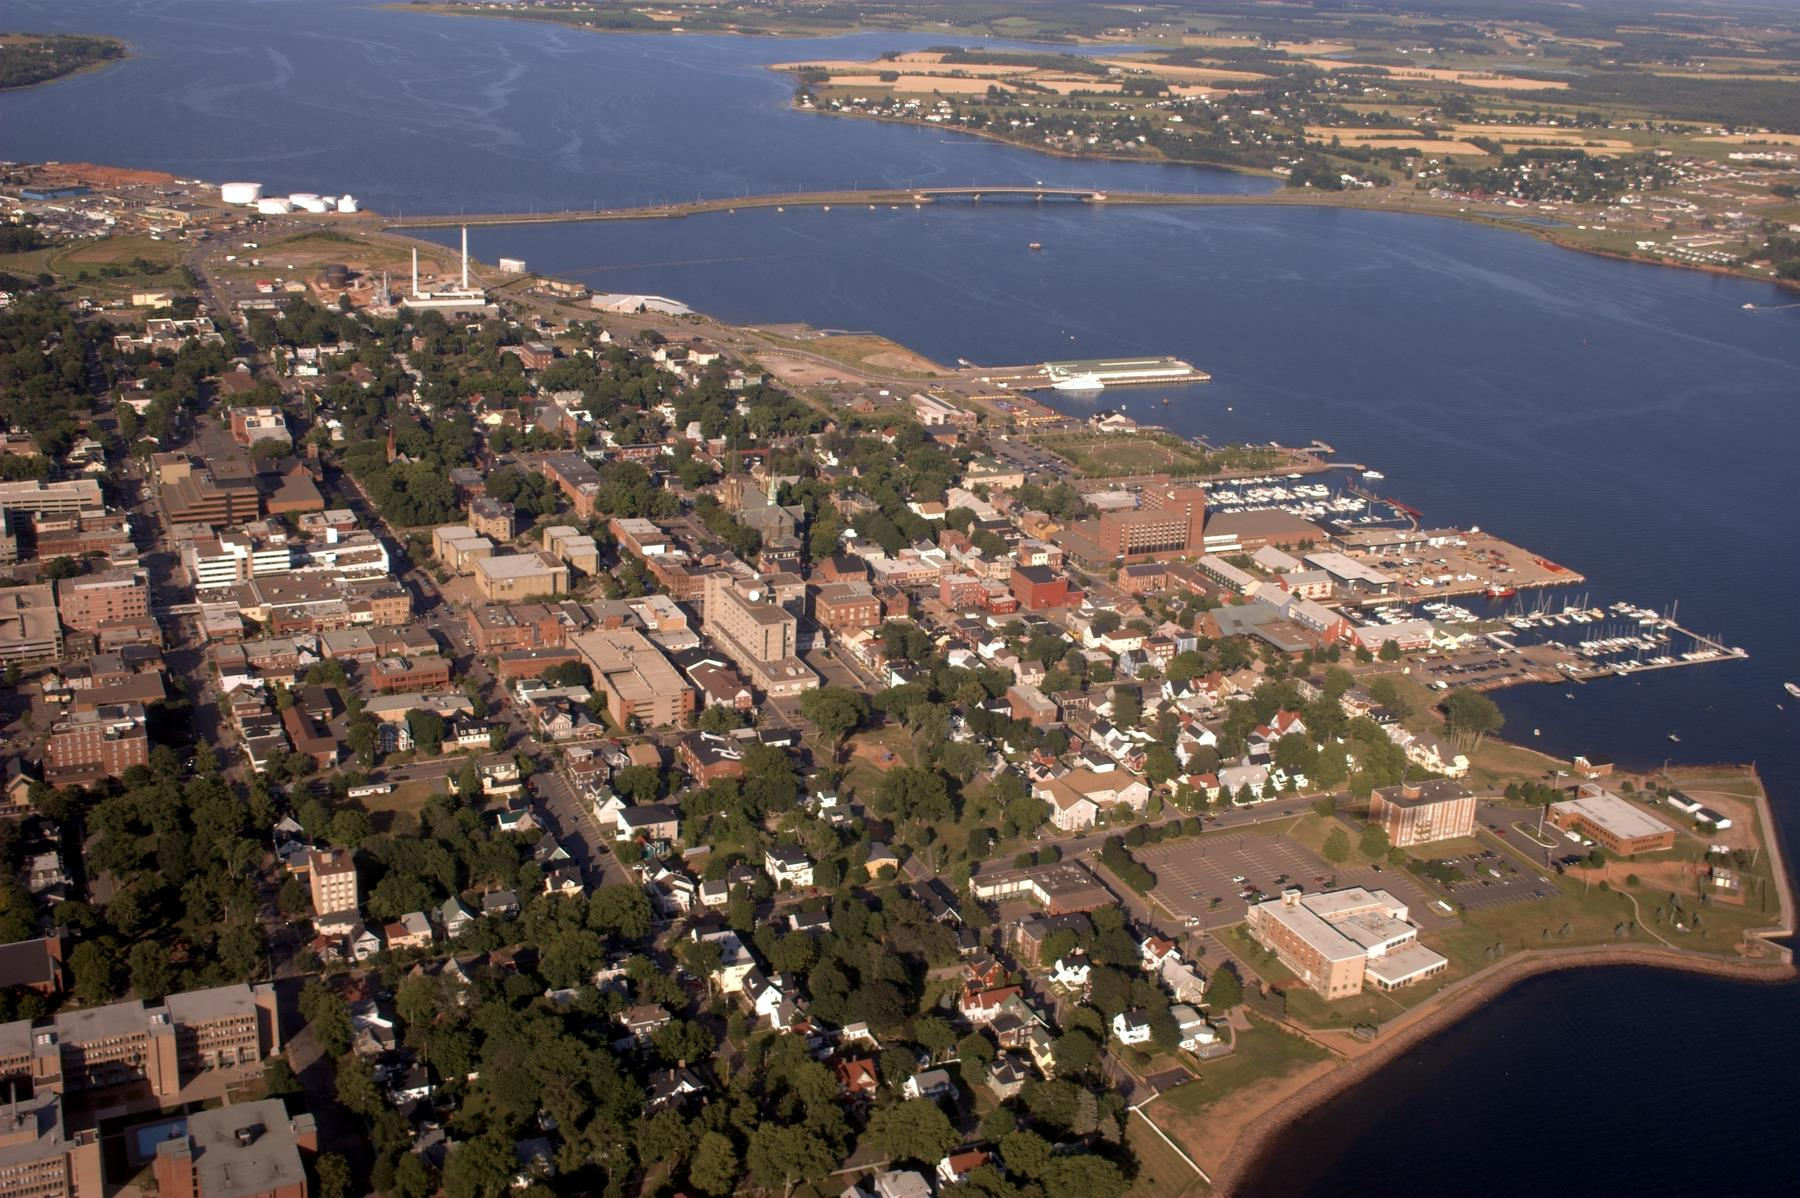 """""""Charlottetown aerial photo"""" by Martin Cathrae from Charlottetown, PE, Canada - First Look at Charlottetown. Licensed under CC BY-SA 2.0 via Wikimedia Commons - http://commons.wikimedia.org/wiki/File:Charlottetown_aerial_photo.jpg#/media/File:Charlottetown_aerial_photo.jpg"""